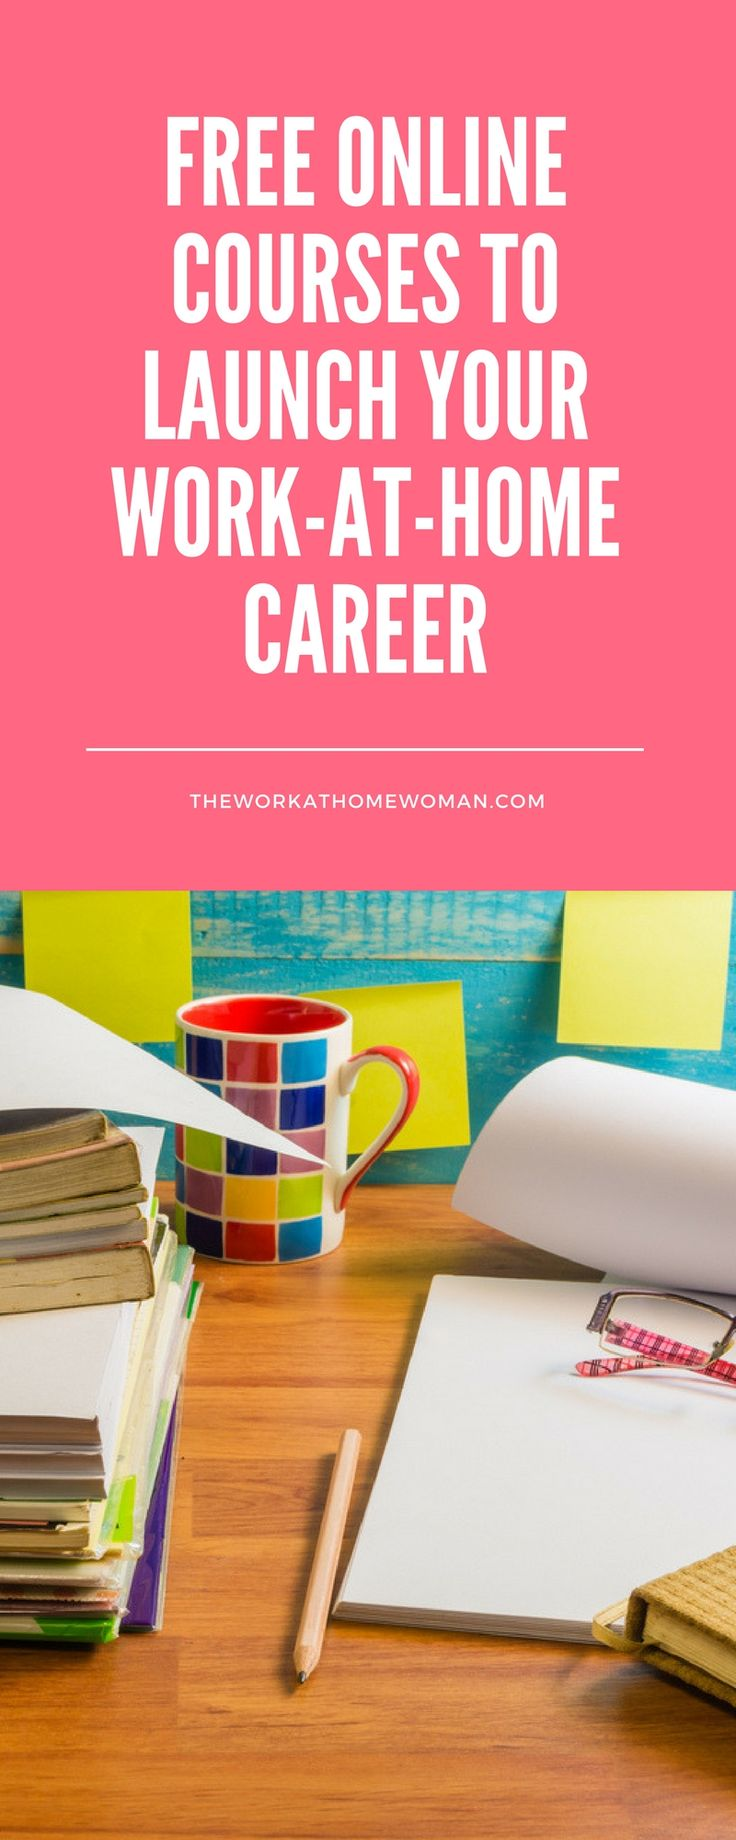 1001 best the work at home woman images on pinterest business free online courses to launch your work at home career